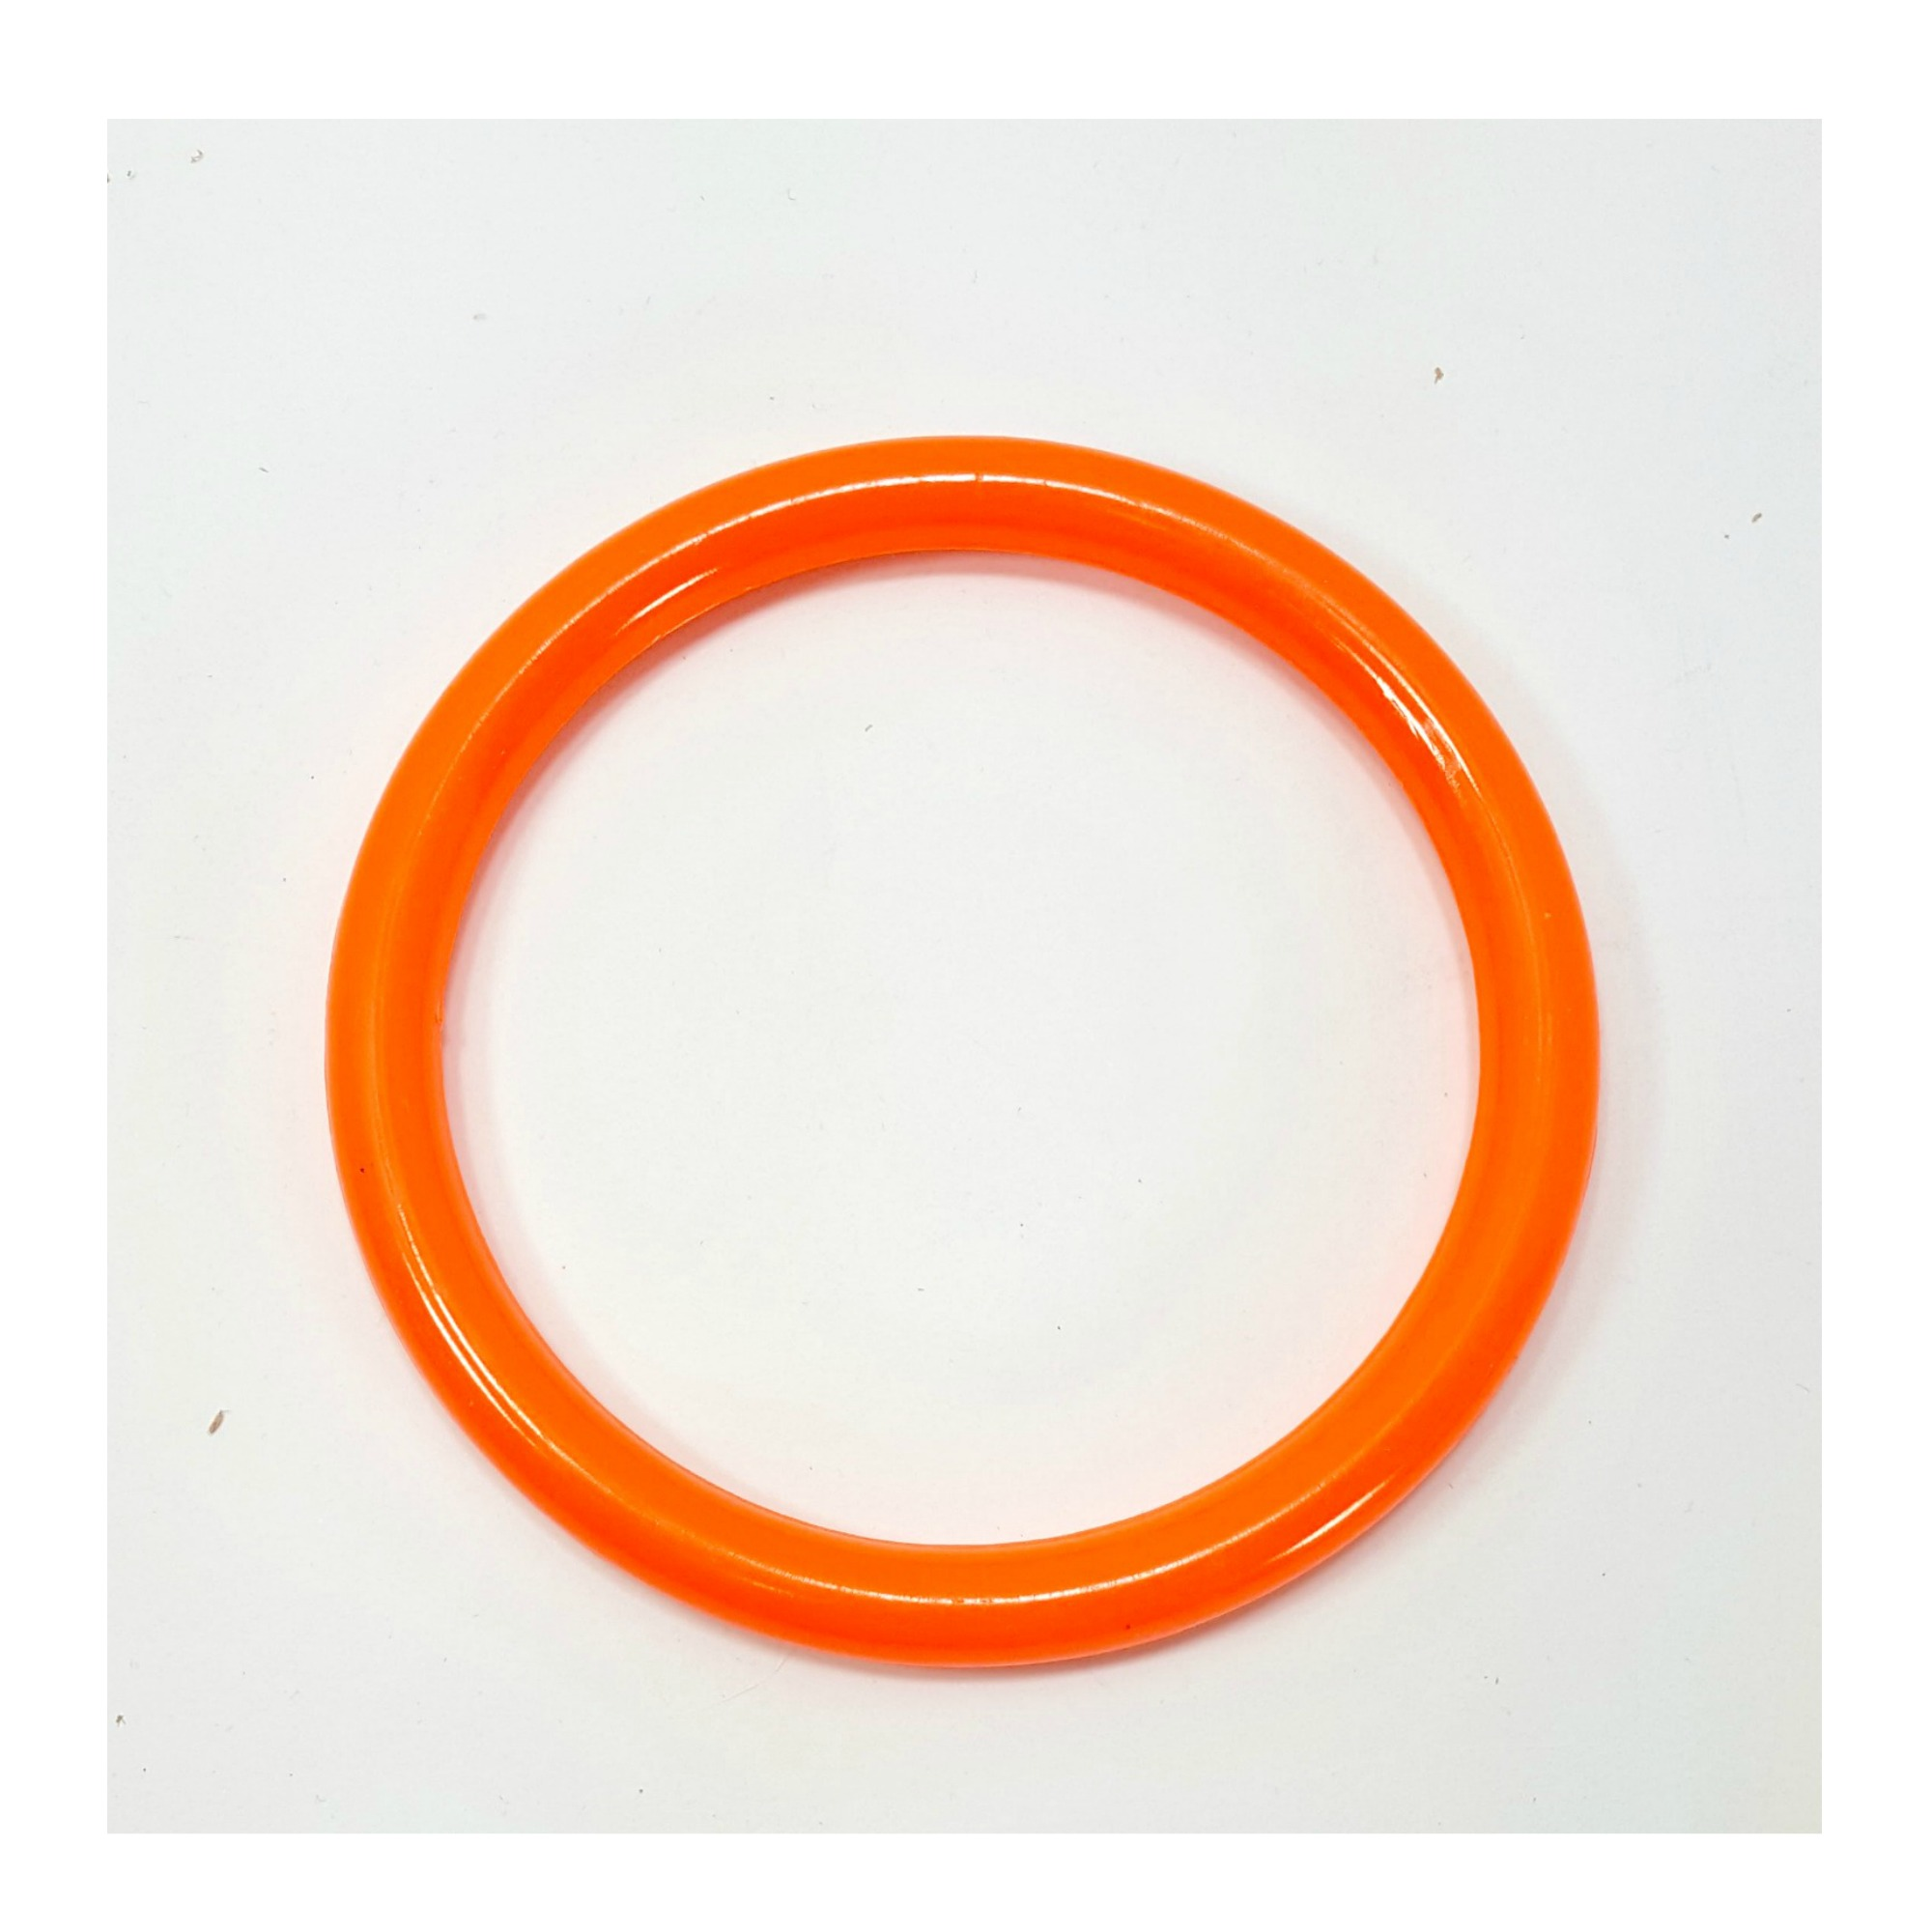 "Marbella Style Ring for Bird Toys Crafts 5"" Orange 1 pc"